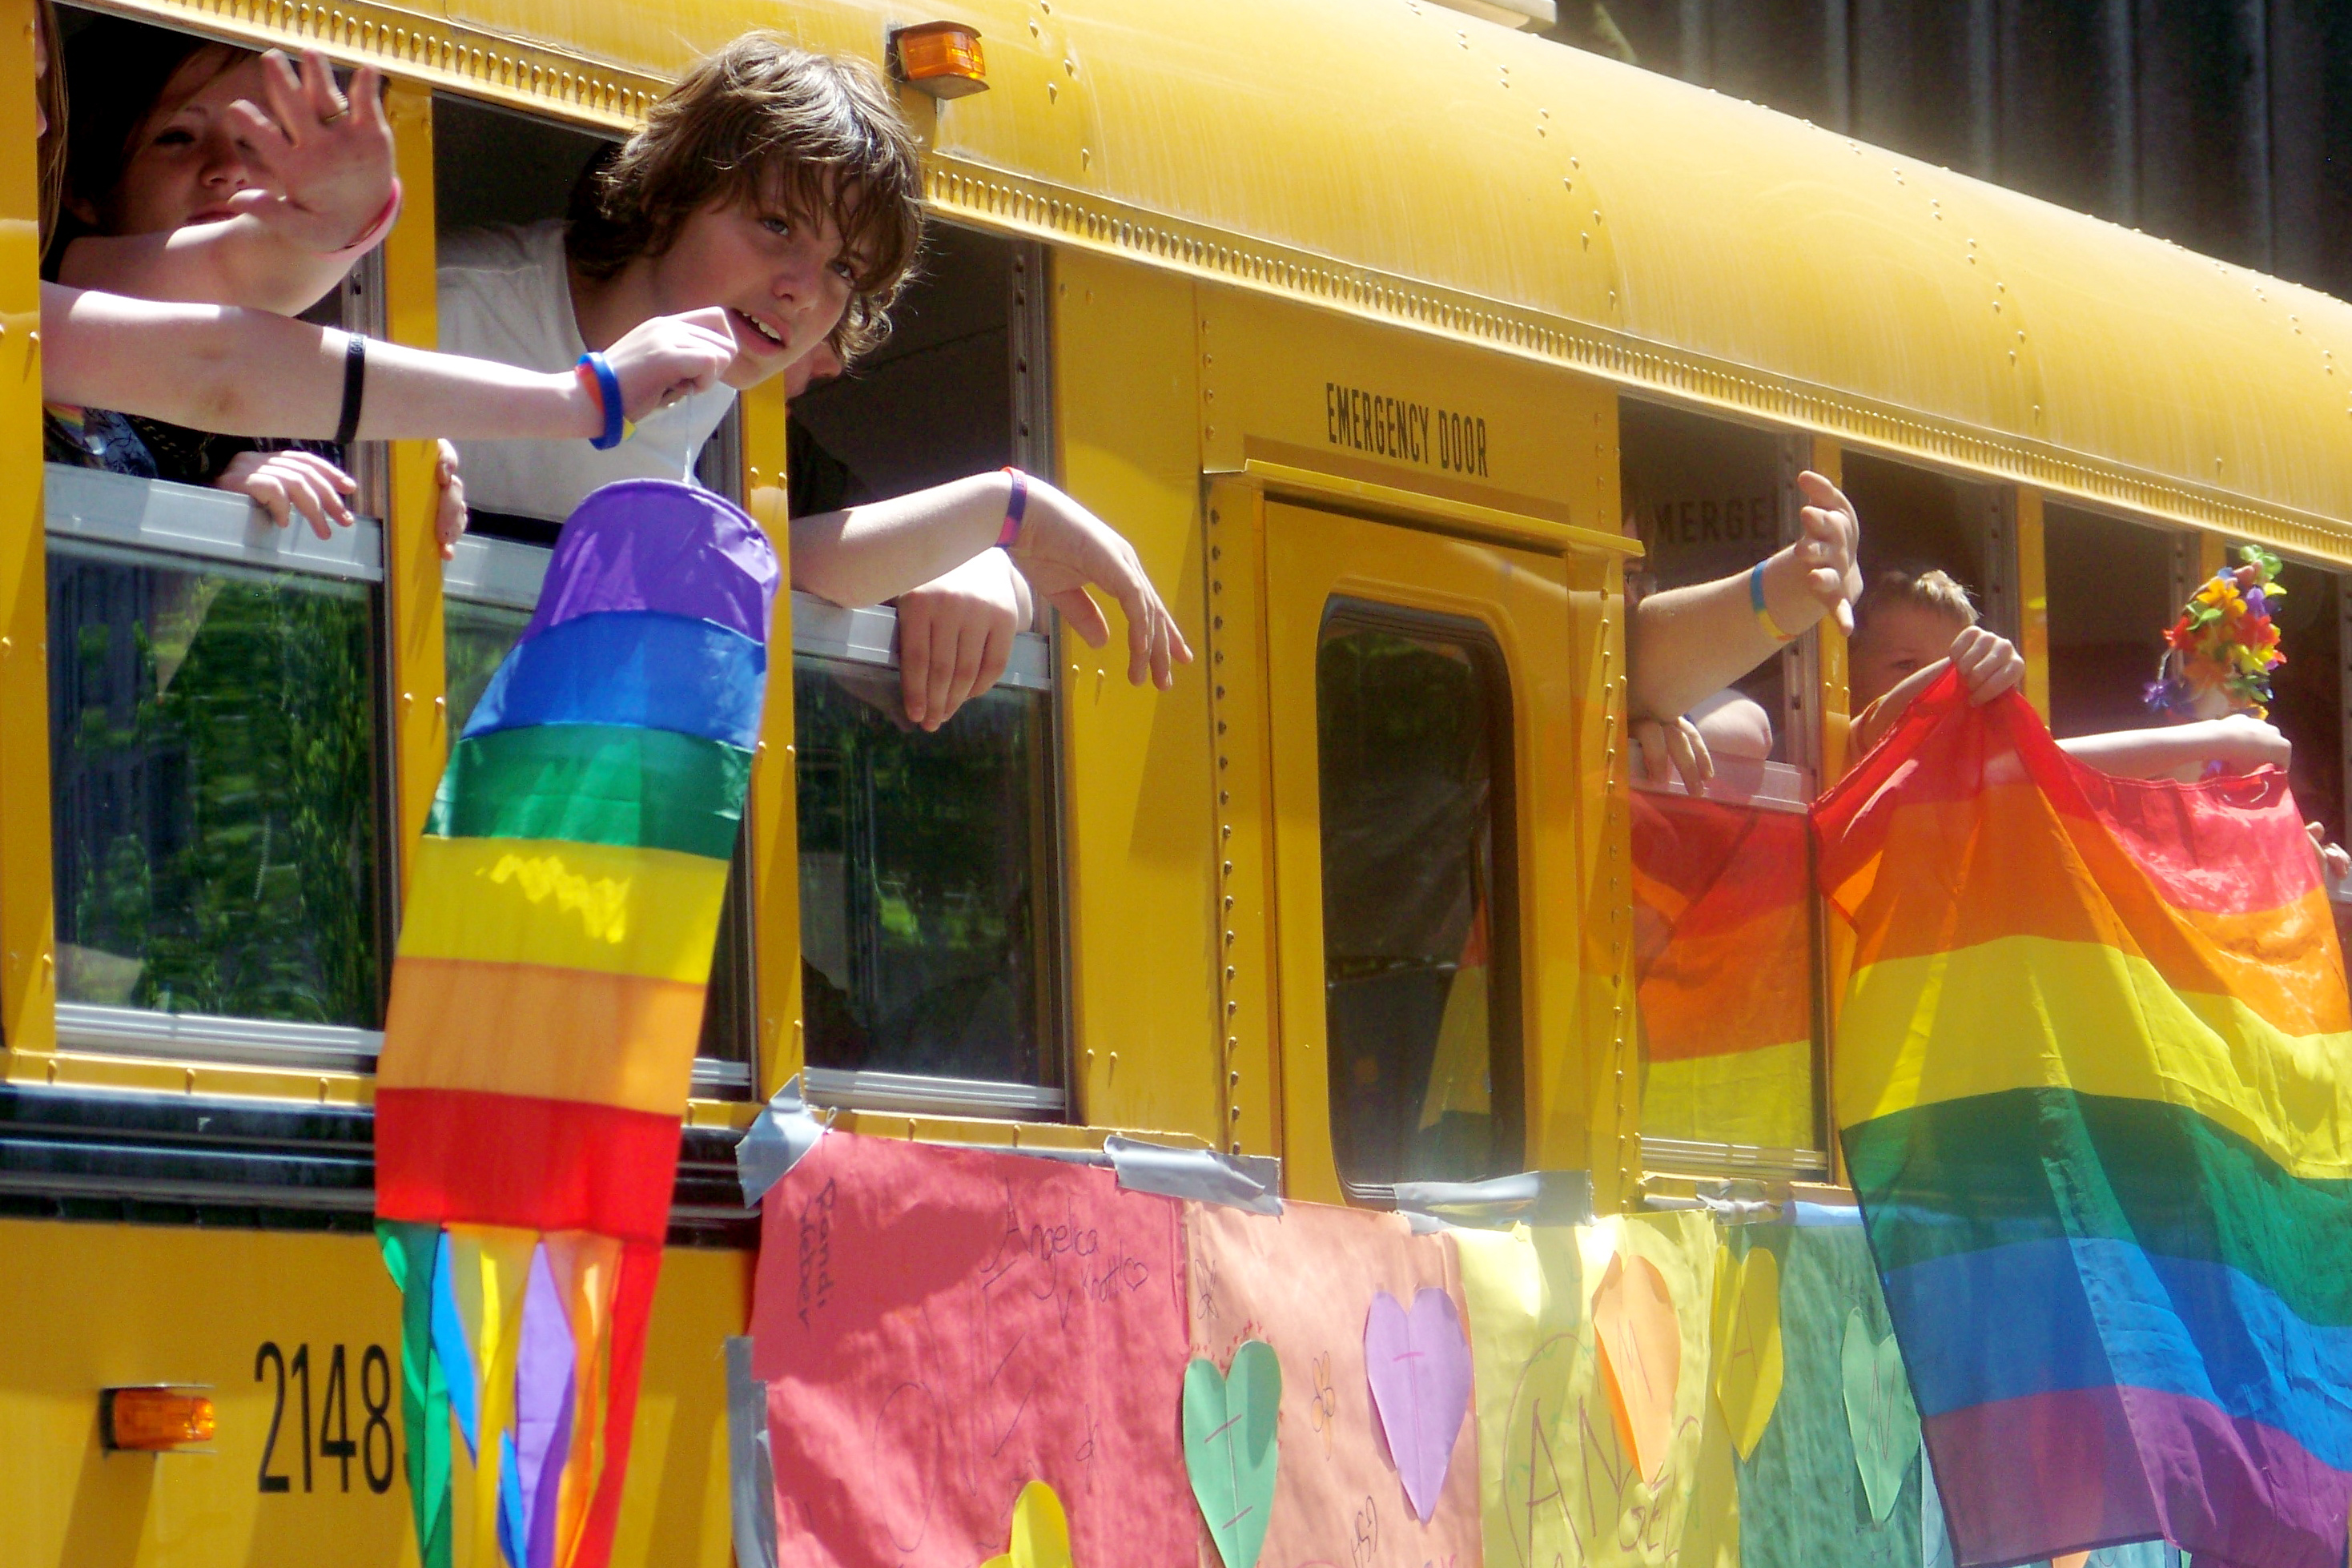 school bus with gay pride banners